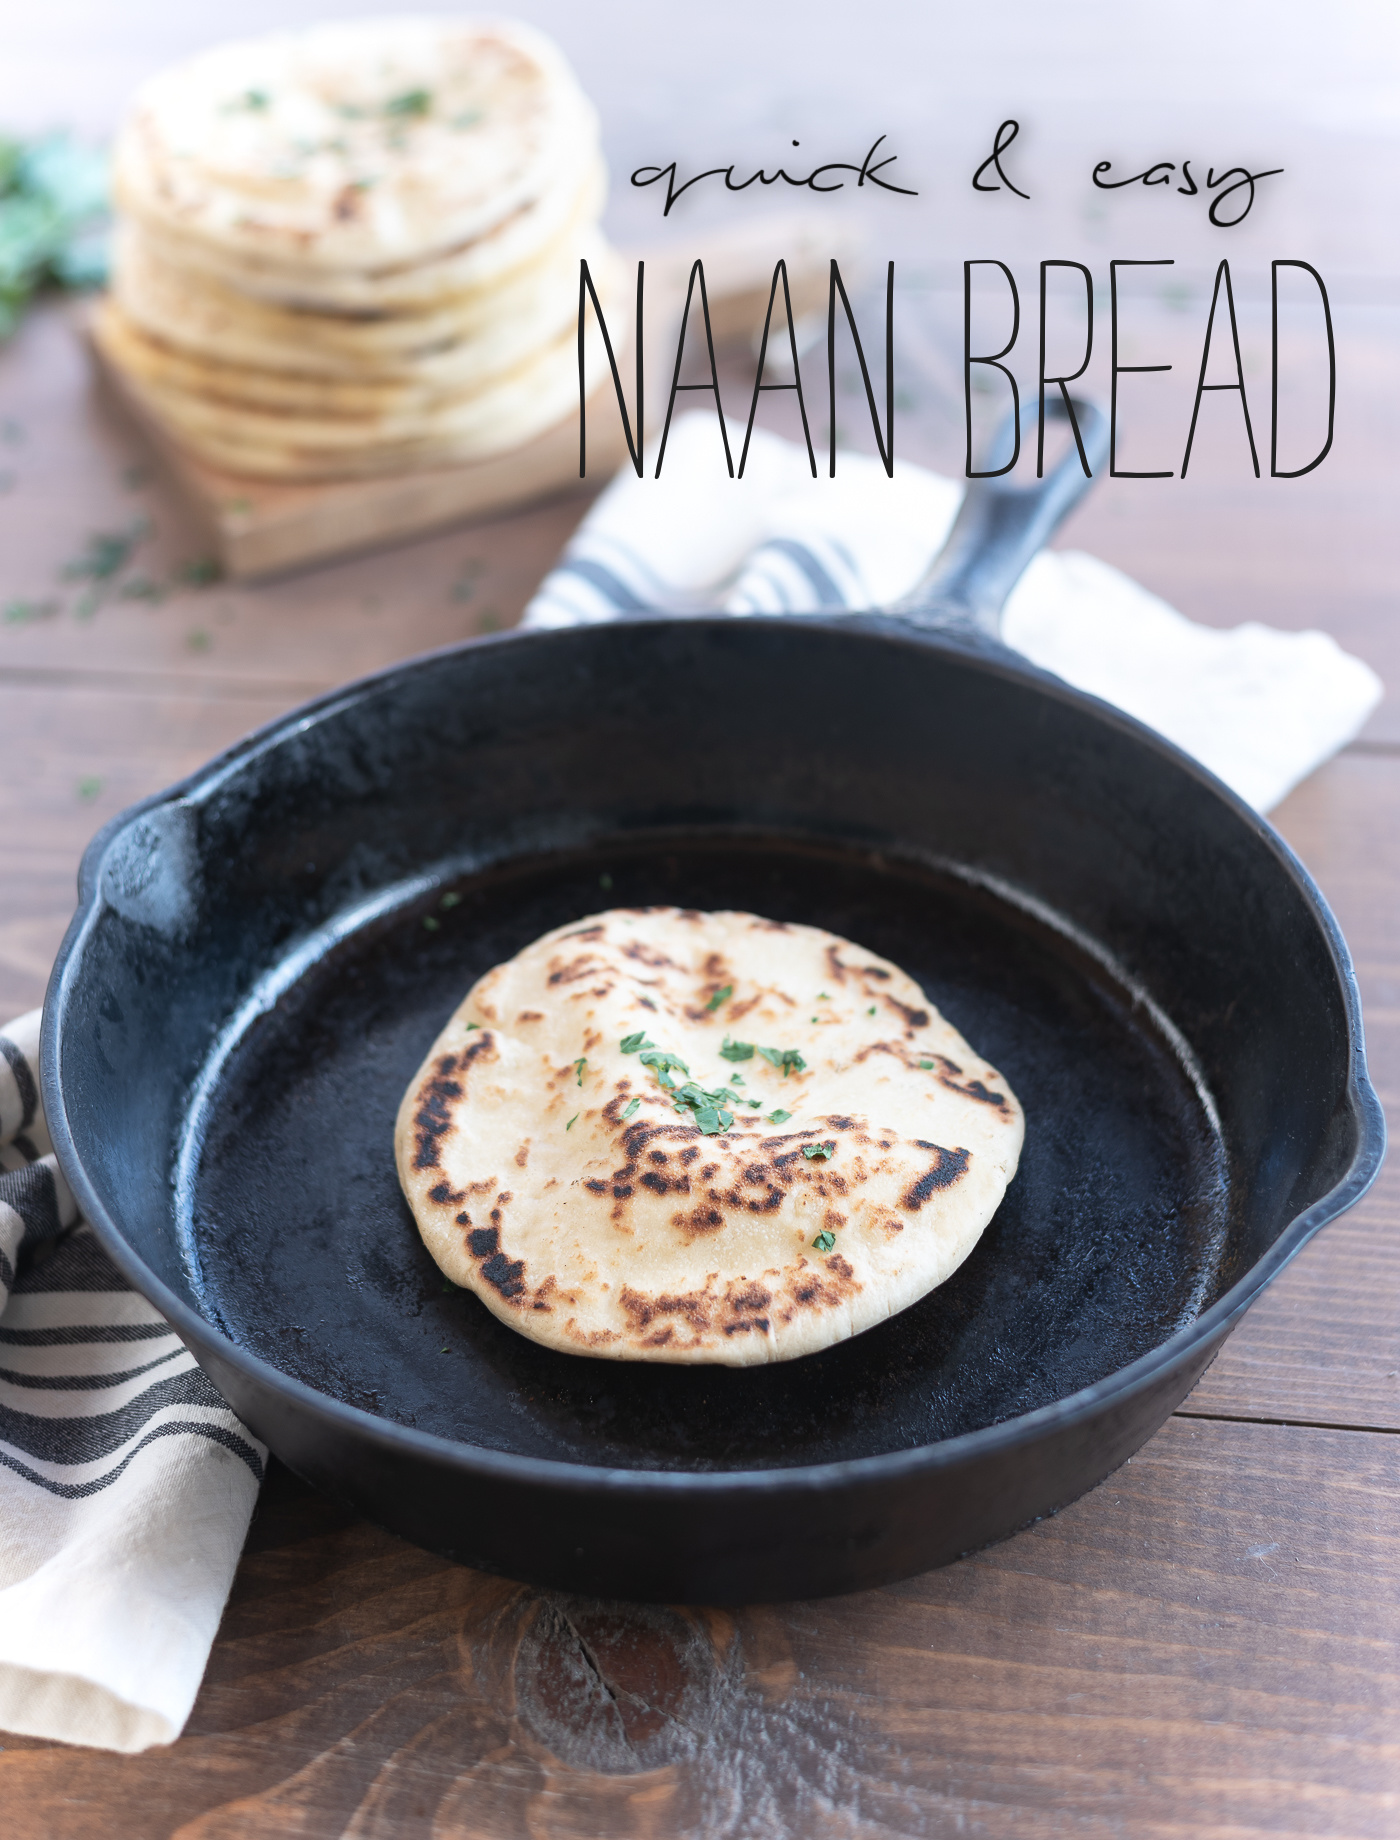 Homemade naan bread in a skillet.